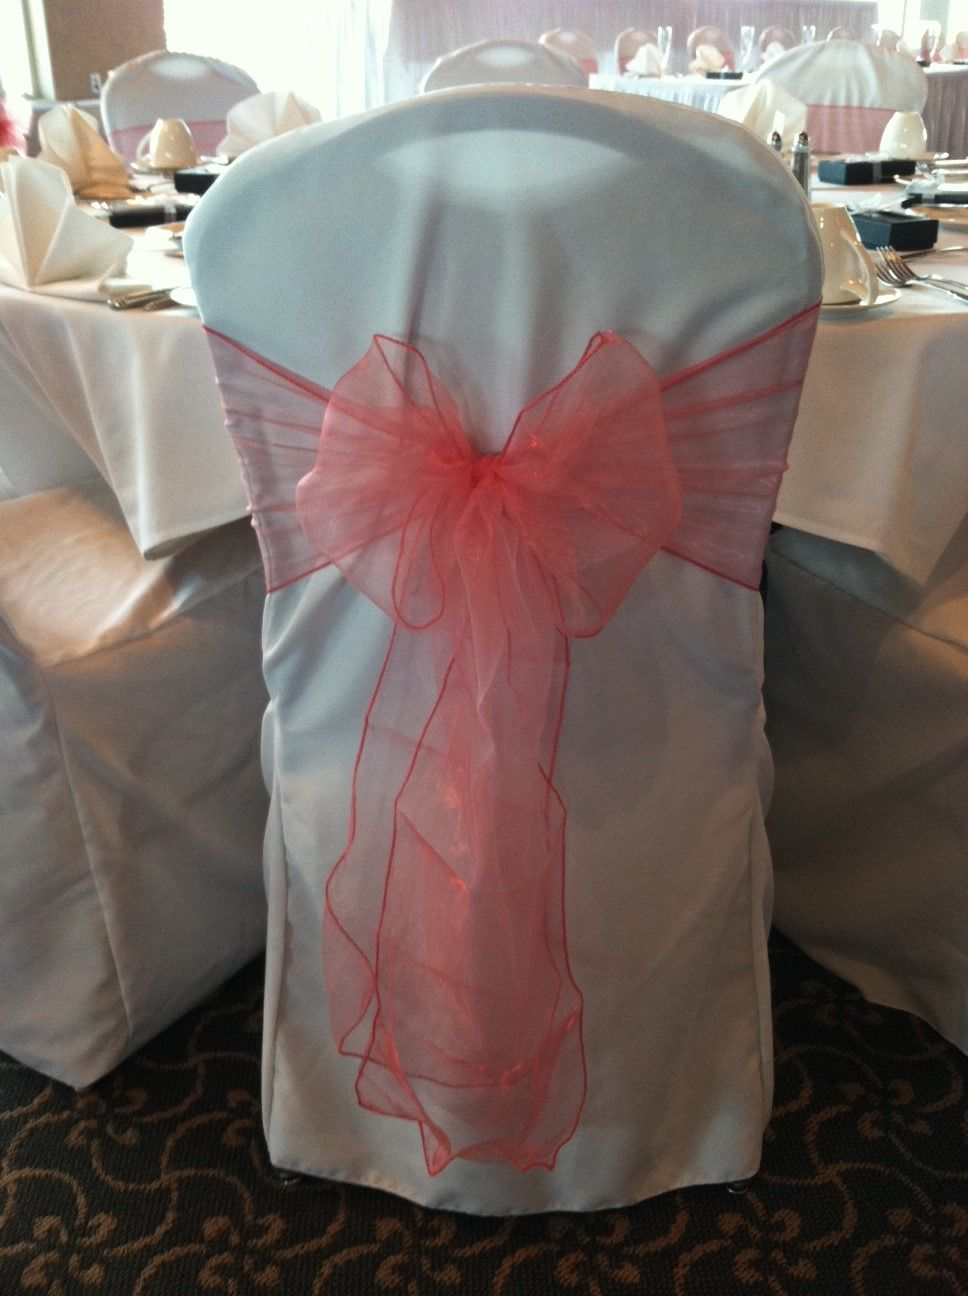 Beach wedding chair sashes - Wedding Coral Reef Guava Organza Sashes Ties On White Chair Cover